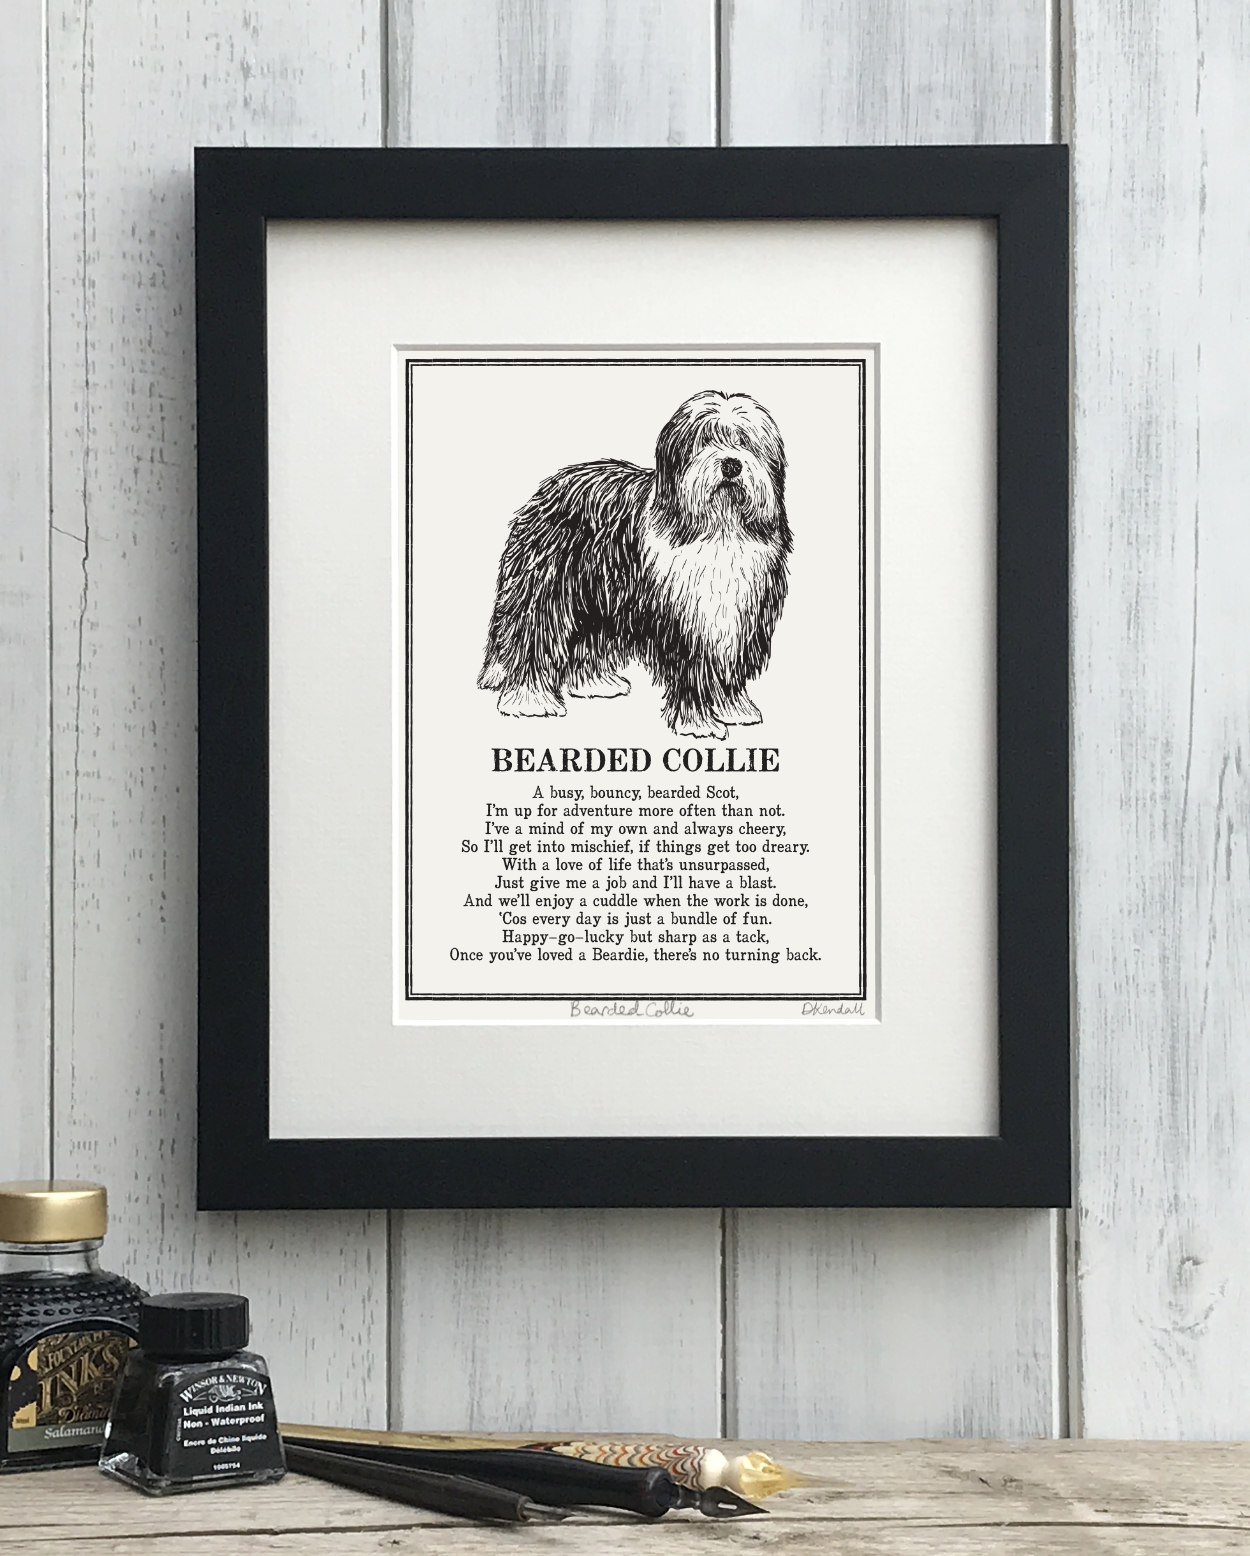 Bearded Collie print illustrated poem by The Enlightened Hound